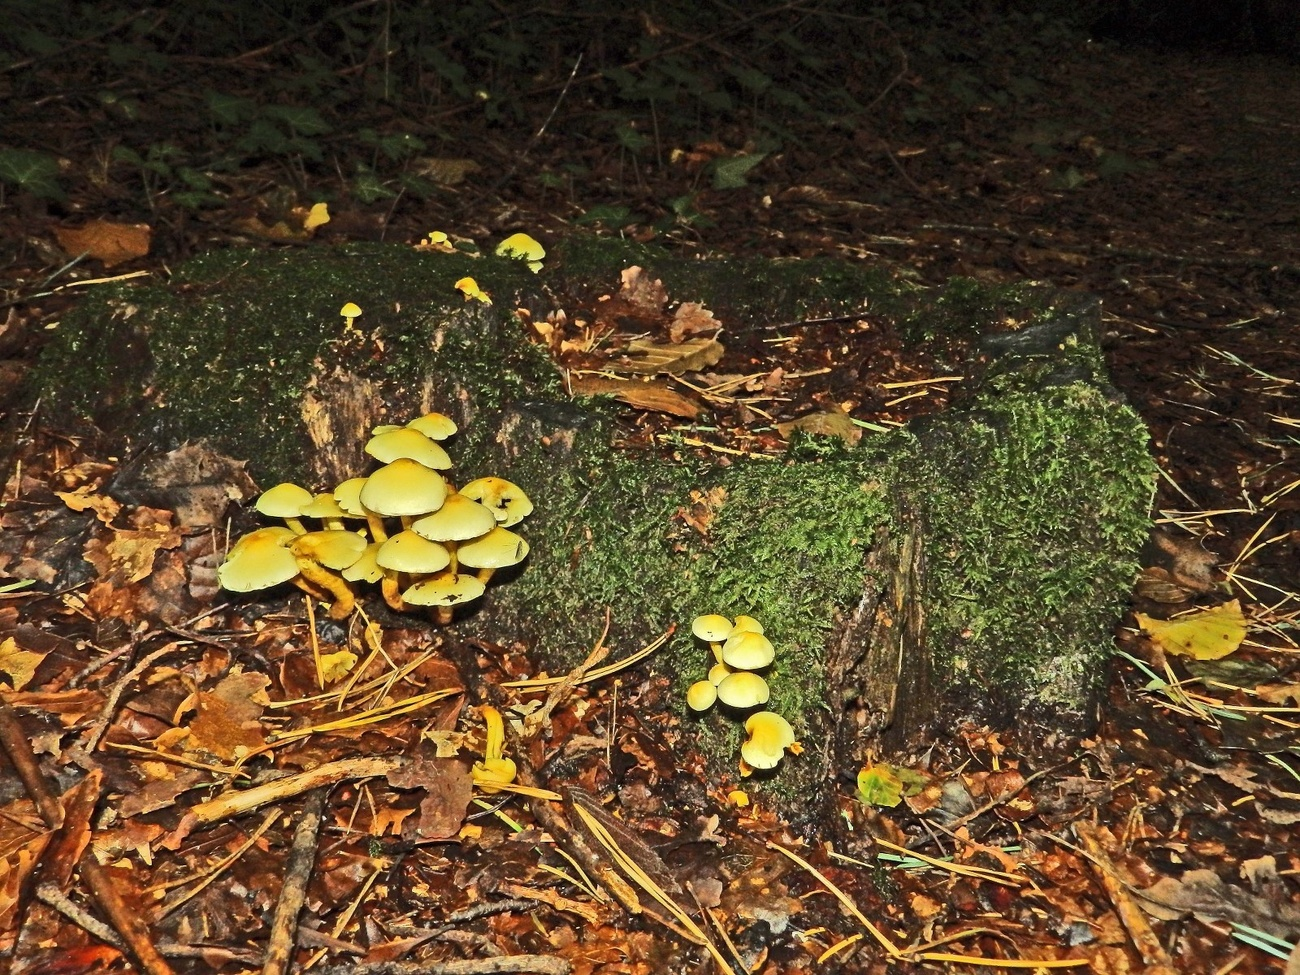 Fungi in the woods.